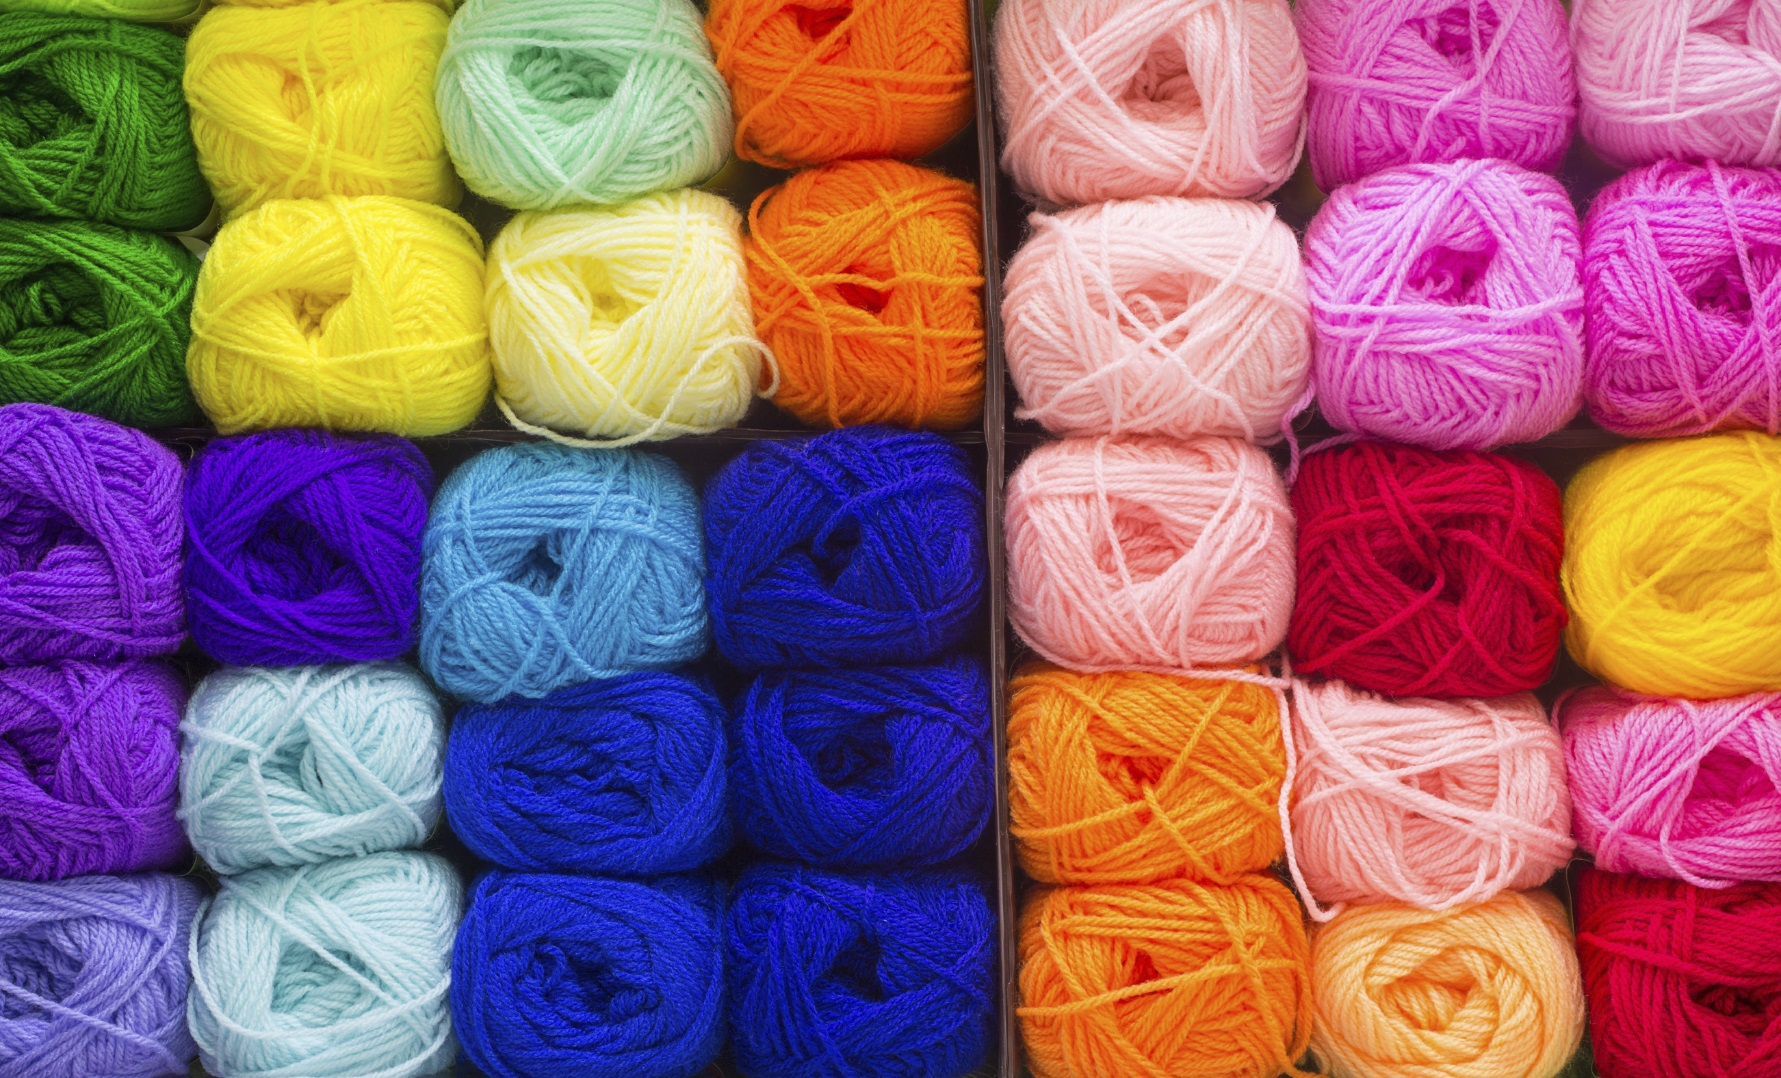 Regulations for Importing Textiles